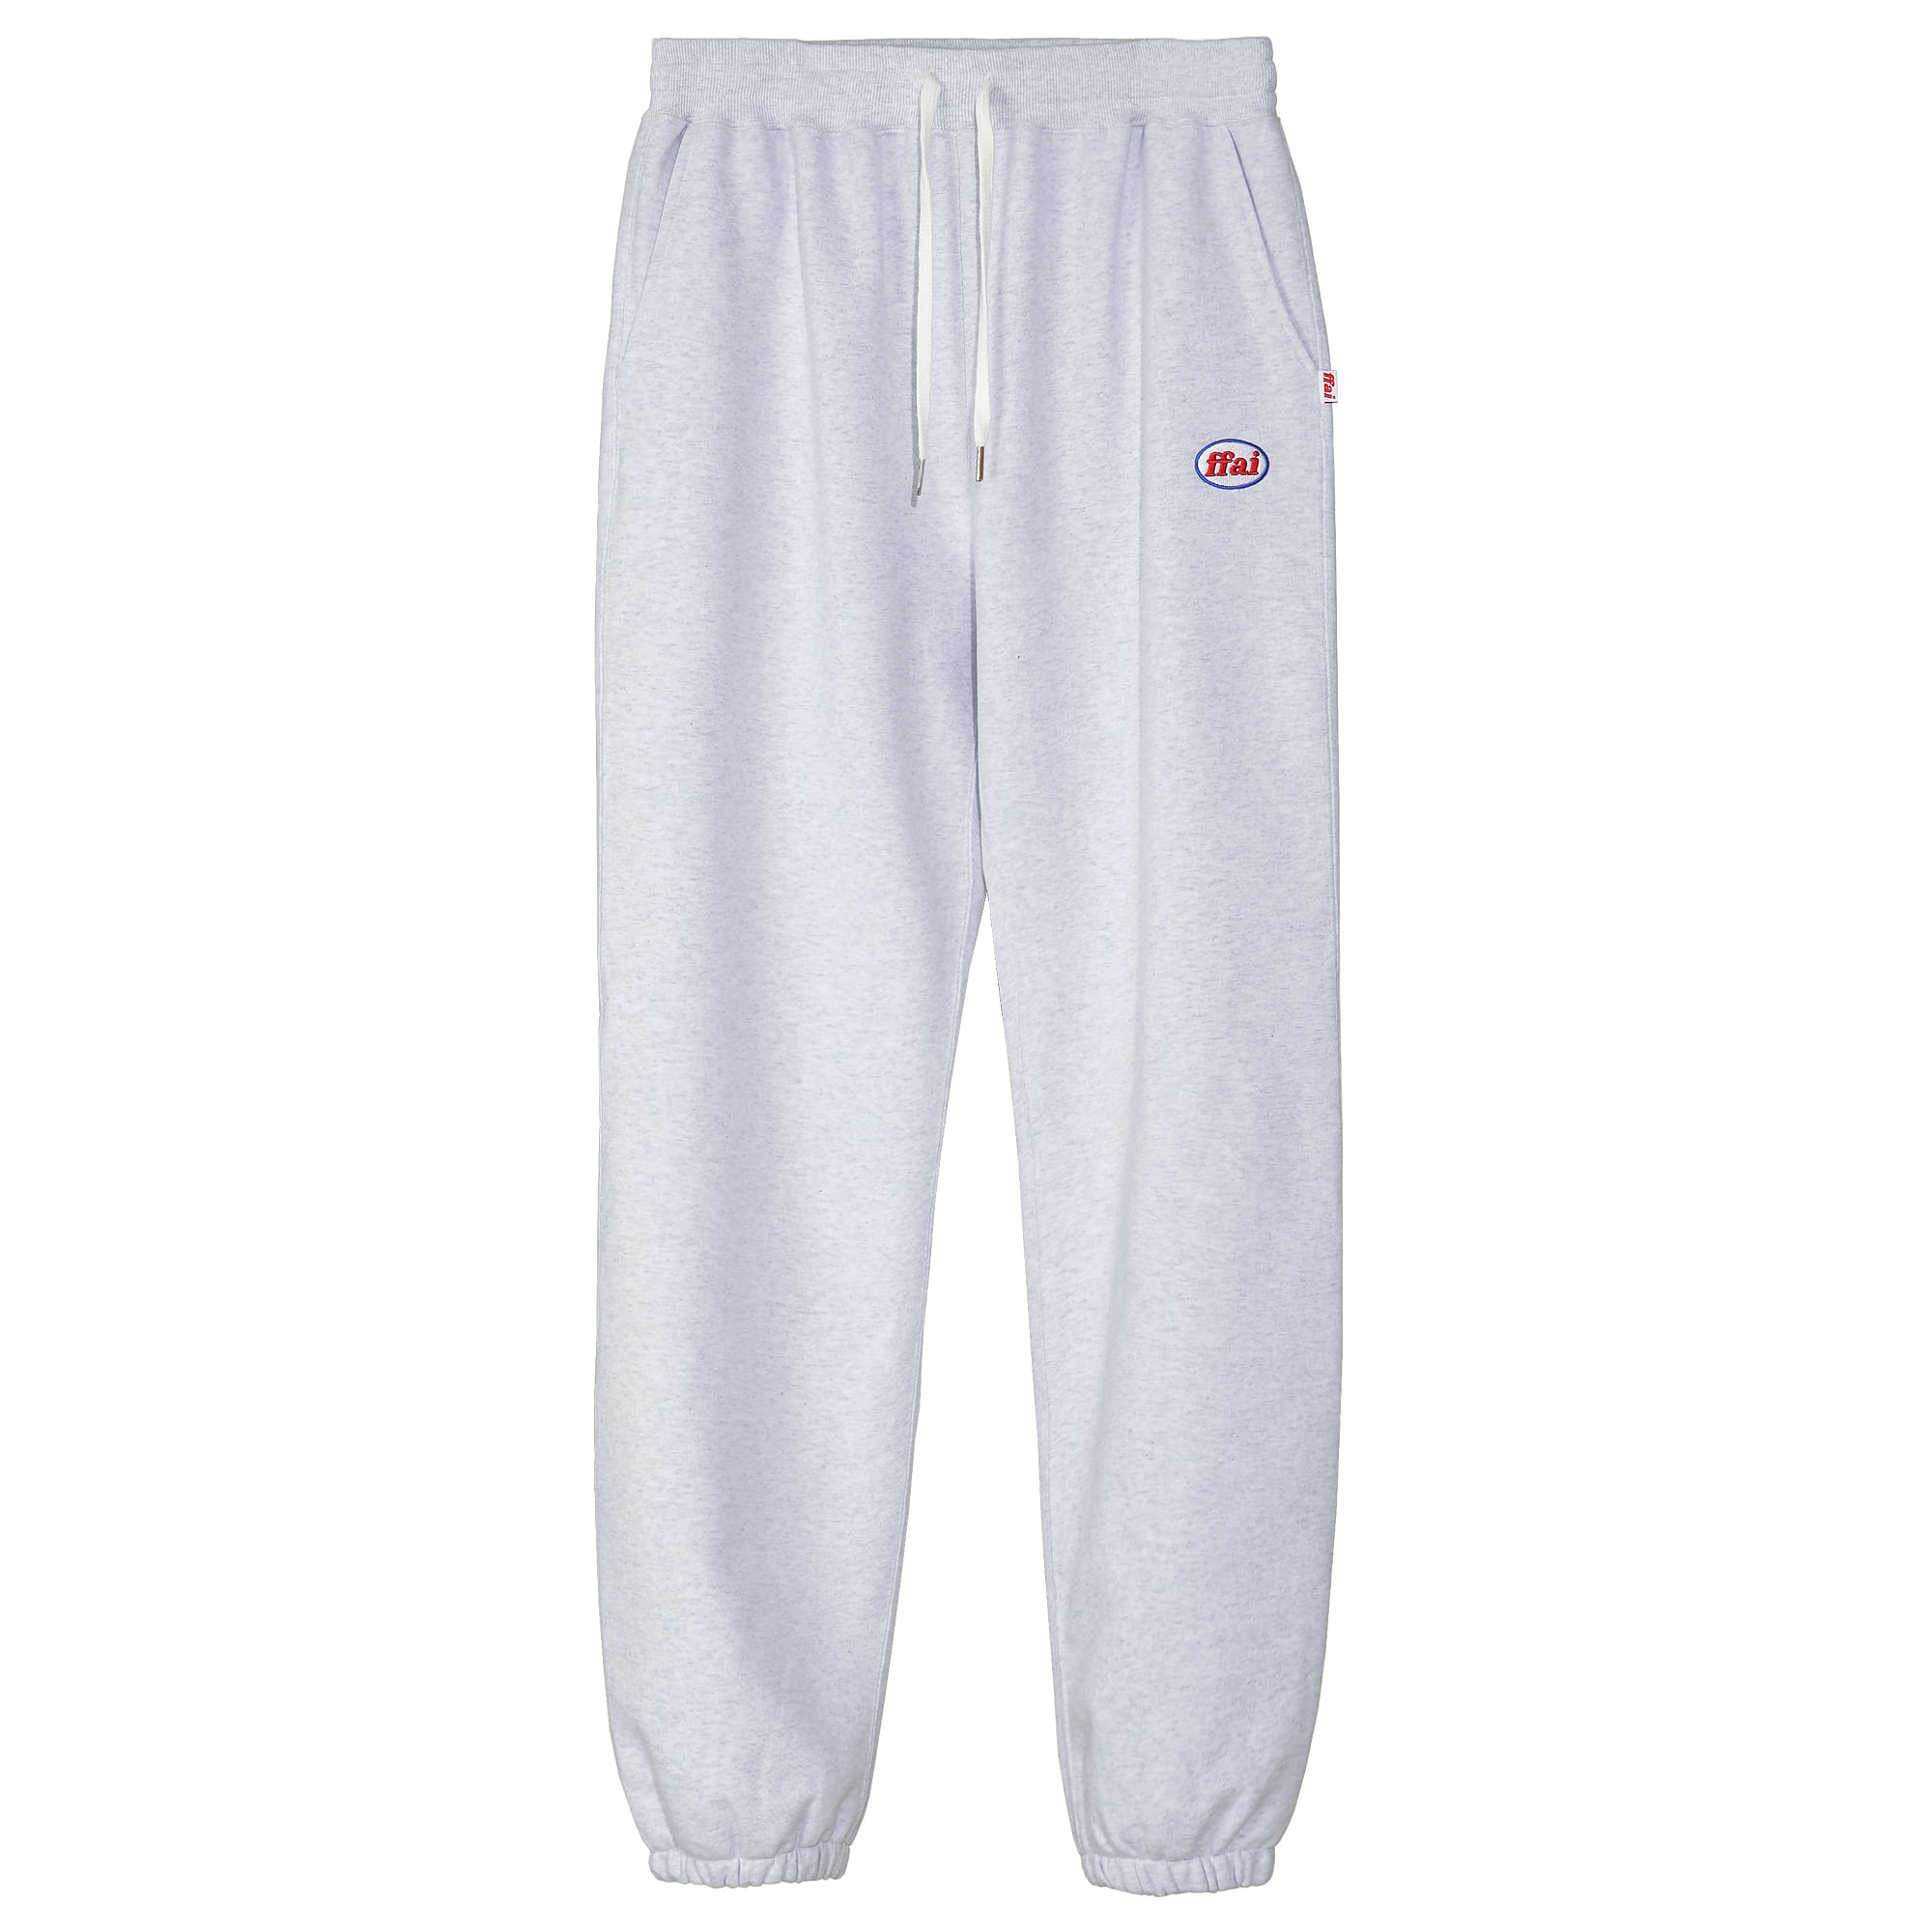 -[FFAI]  - OP.30 SWEAT PANTS (WHITE MELANGE)